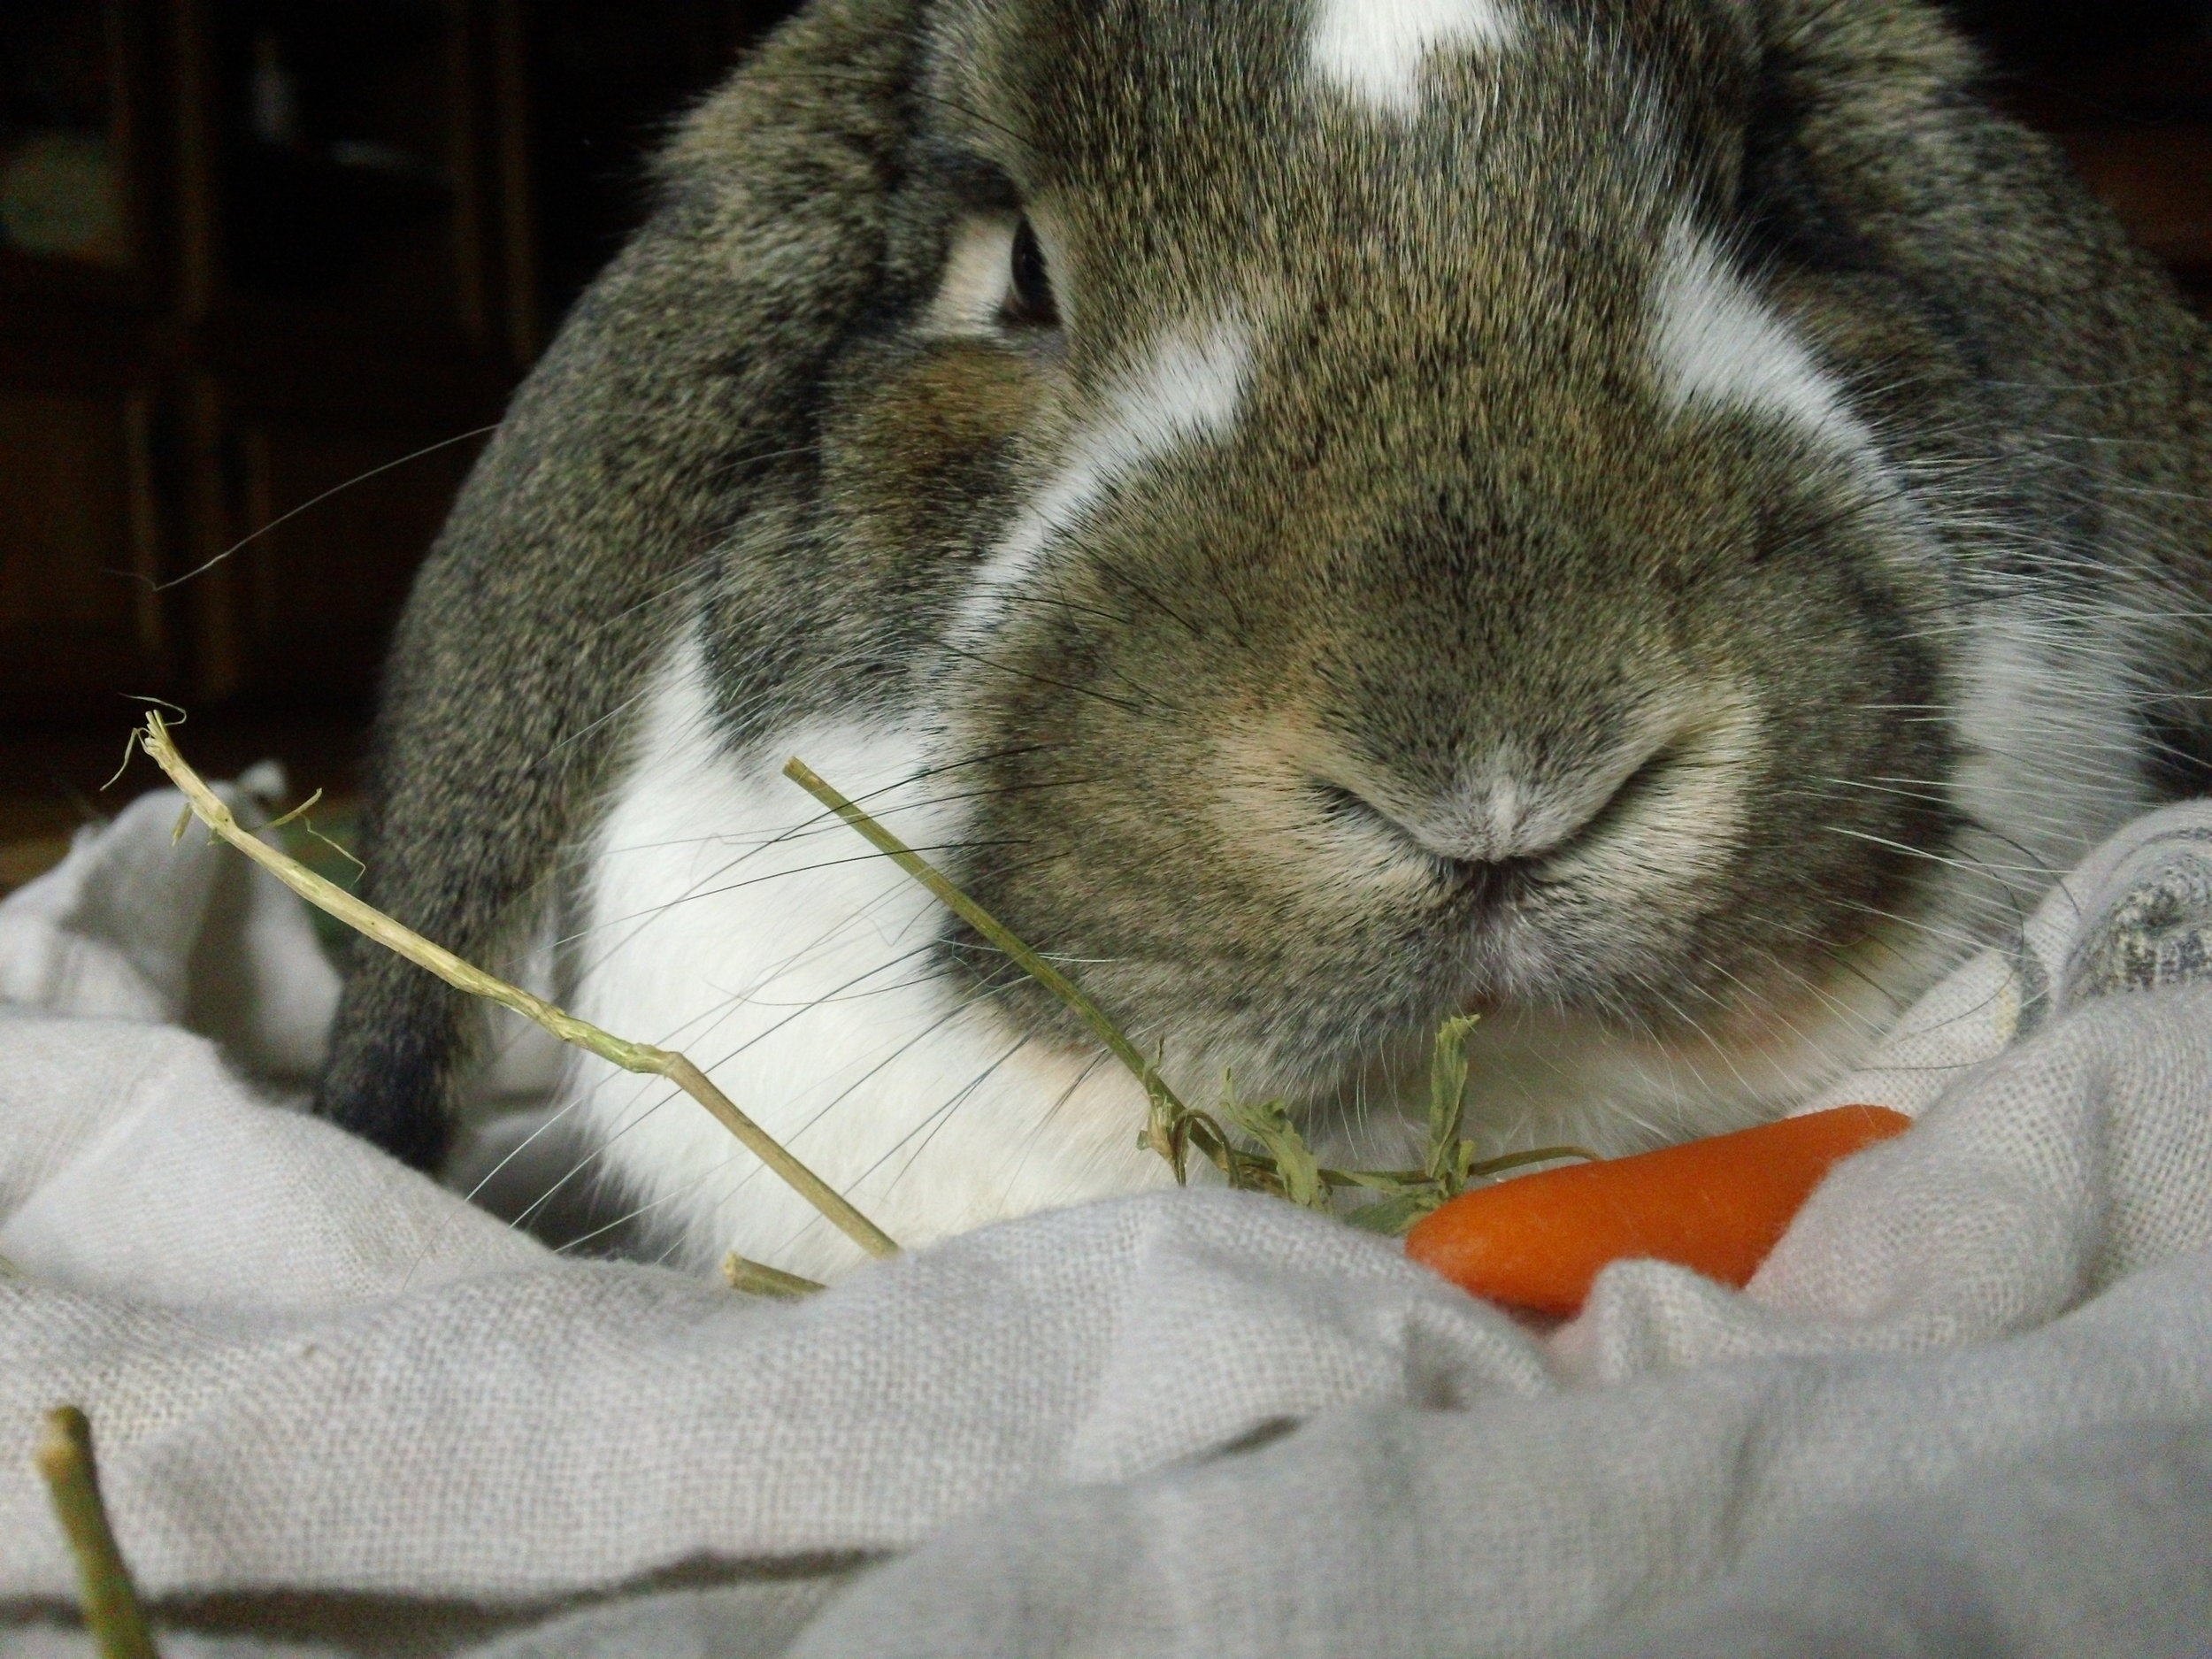 You Get Your Own Carrot, Human. This One's Mine.